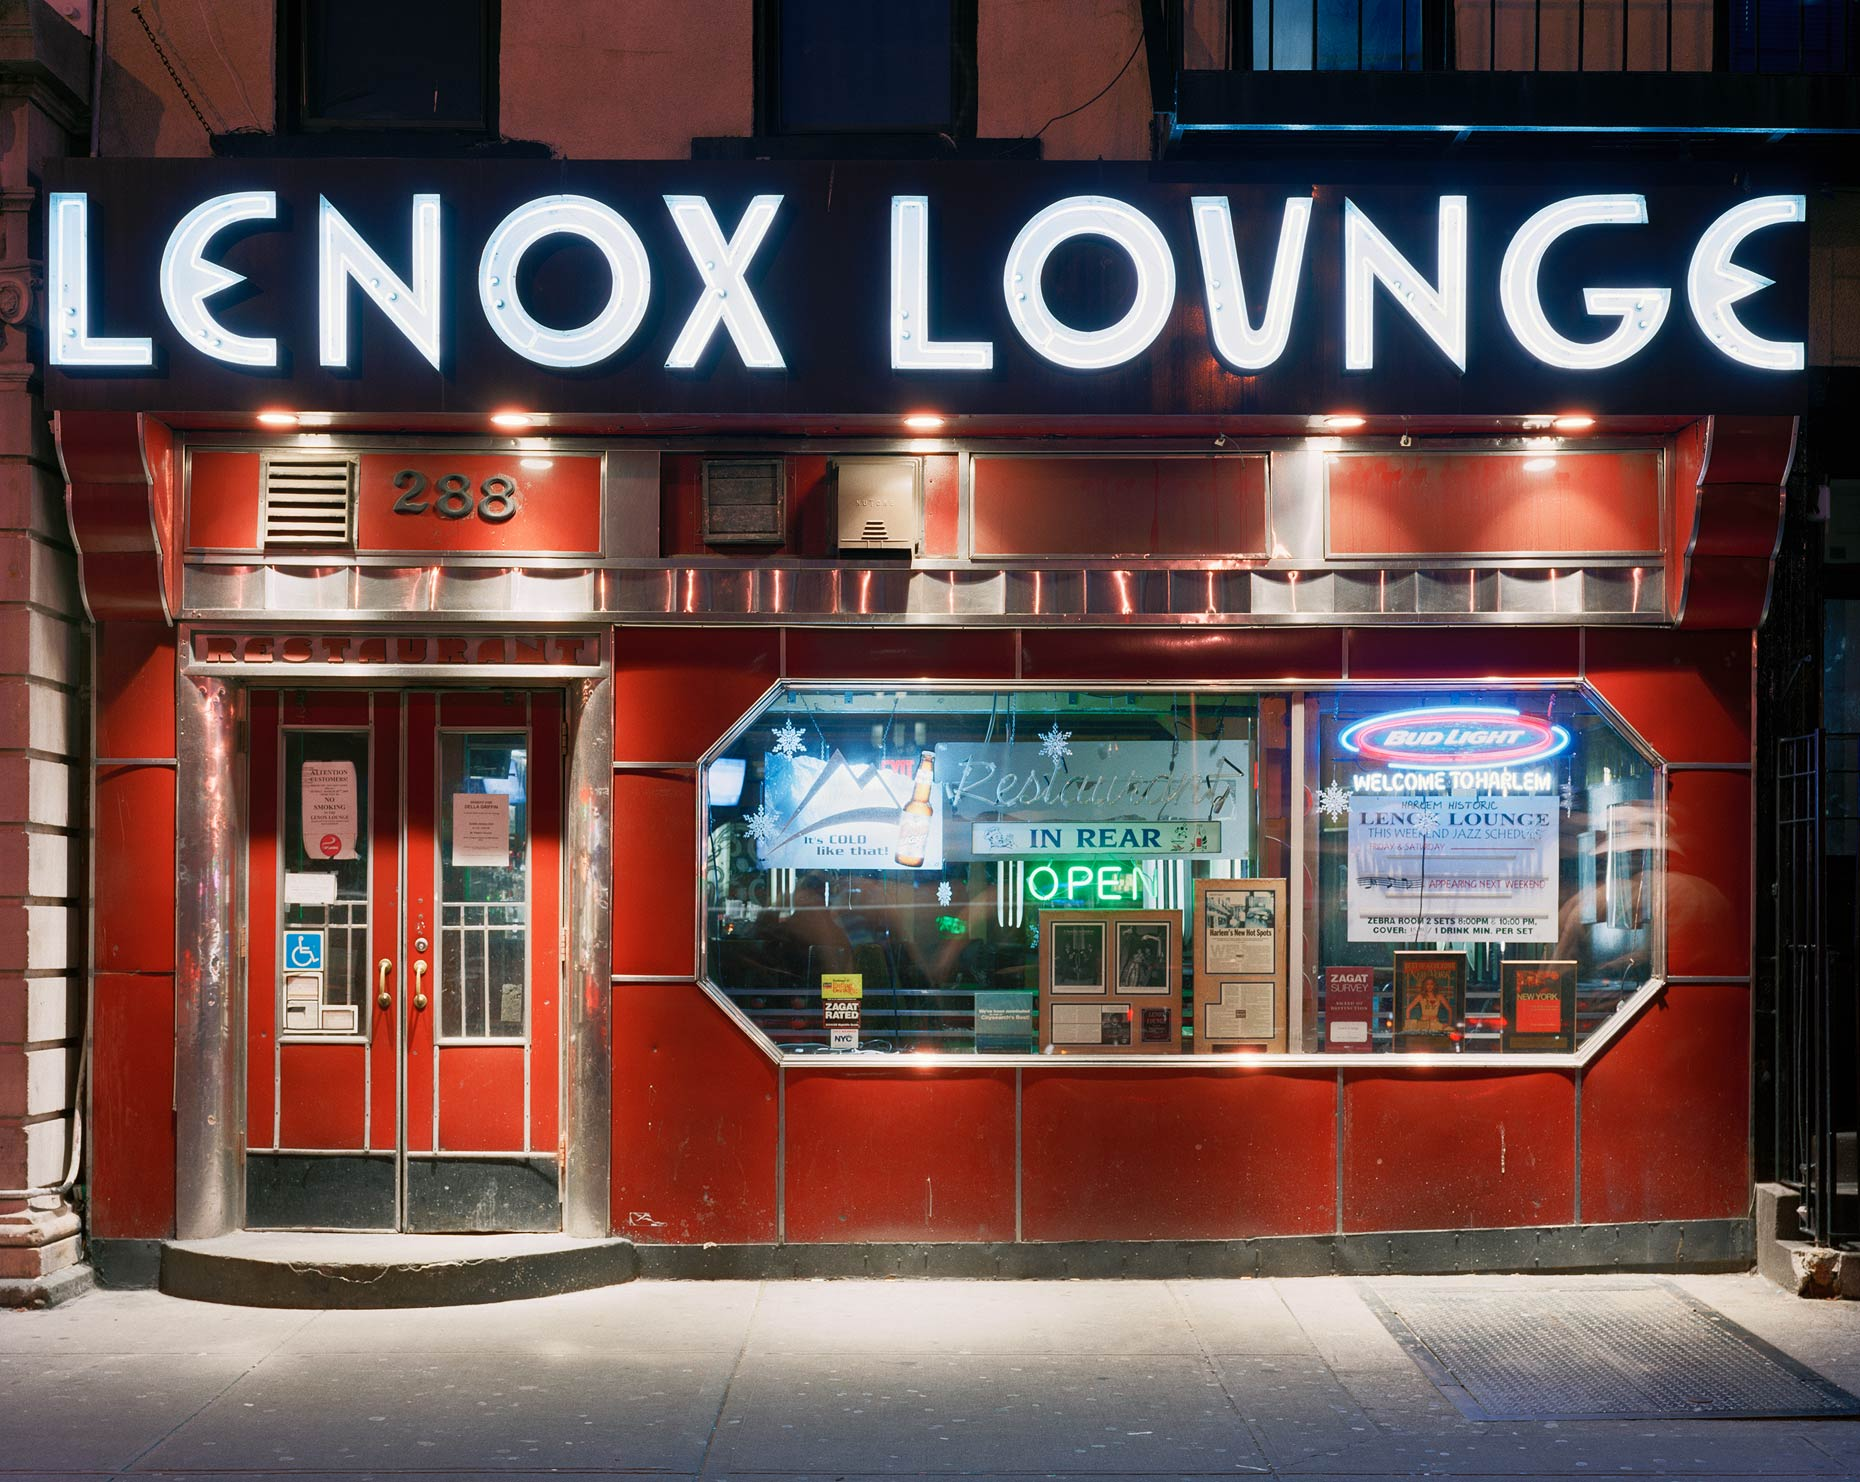 Lenox Lounge, 288 Lenox Avenue, Harlem, New York